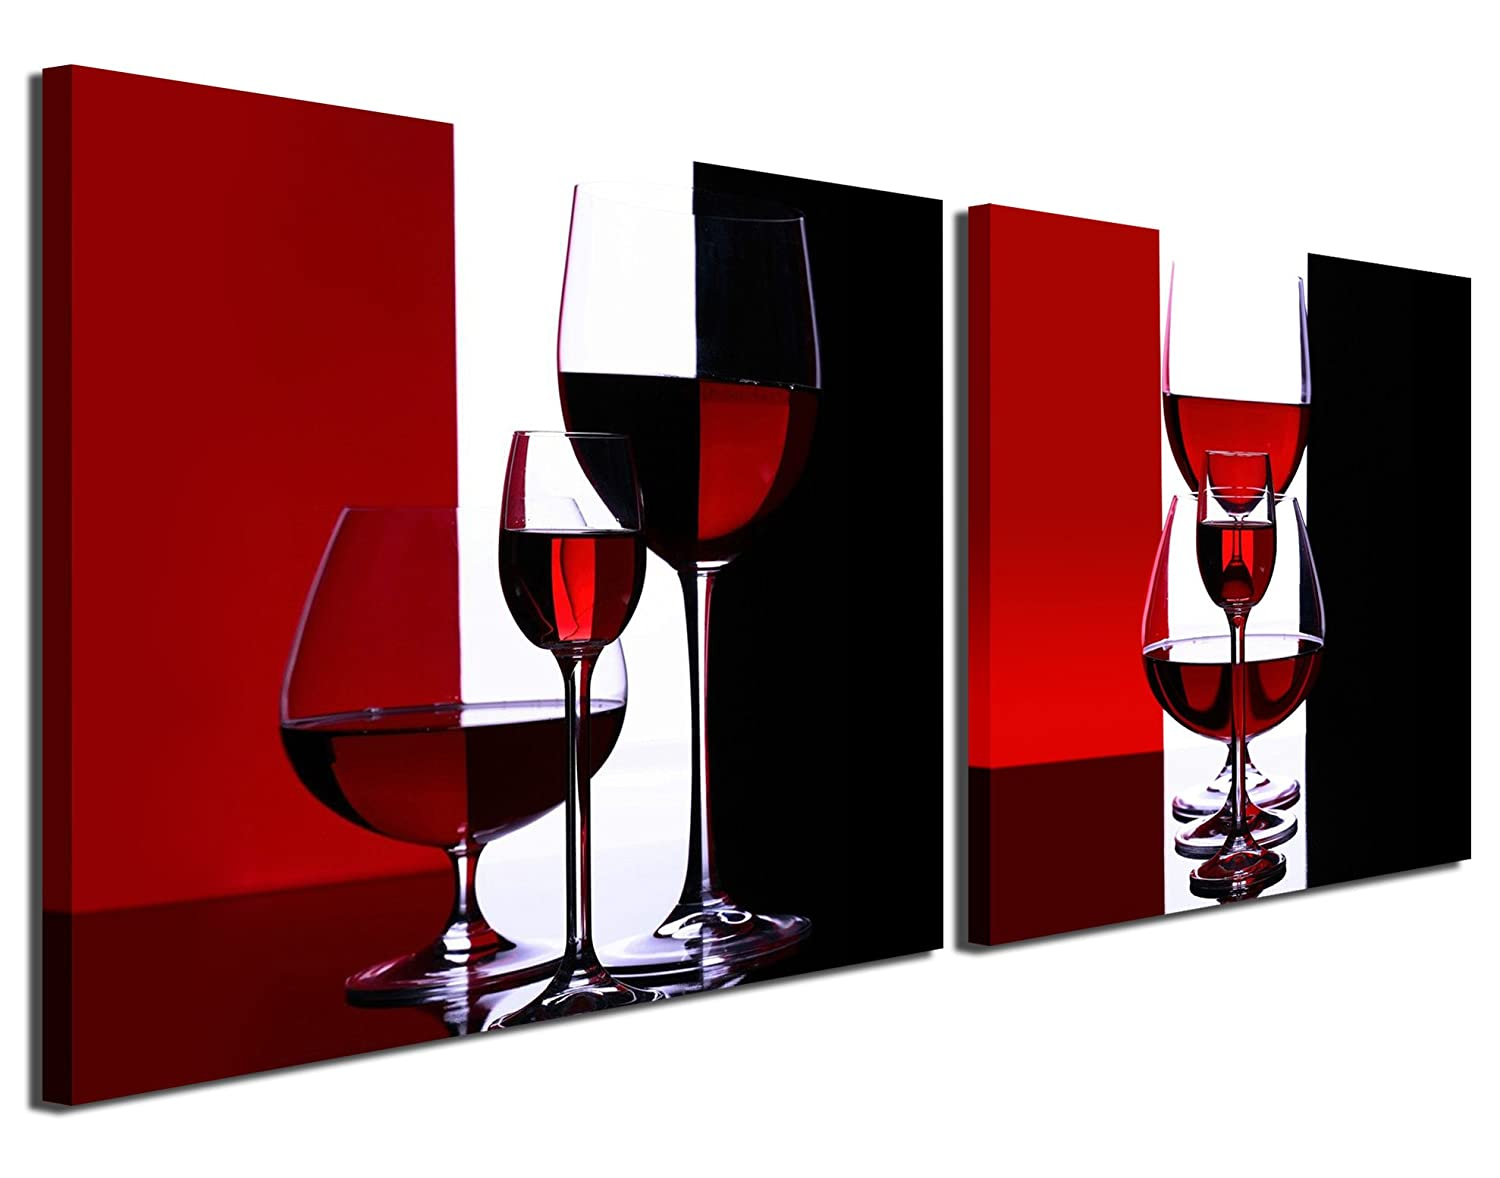 Gardenia Art - Wine Canvas Paintings Wall Art Pictures Abstract Wine Glass in Red Black White for Kitchen Bedroom Living Rommg Decoration, 12x12 inch per Piece, 2 Pieces per Set